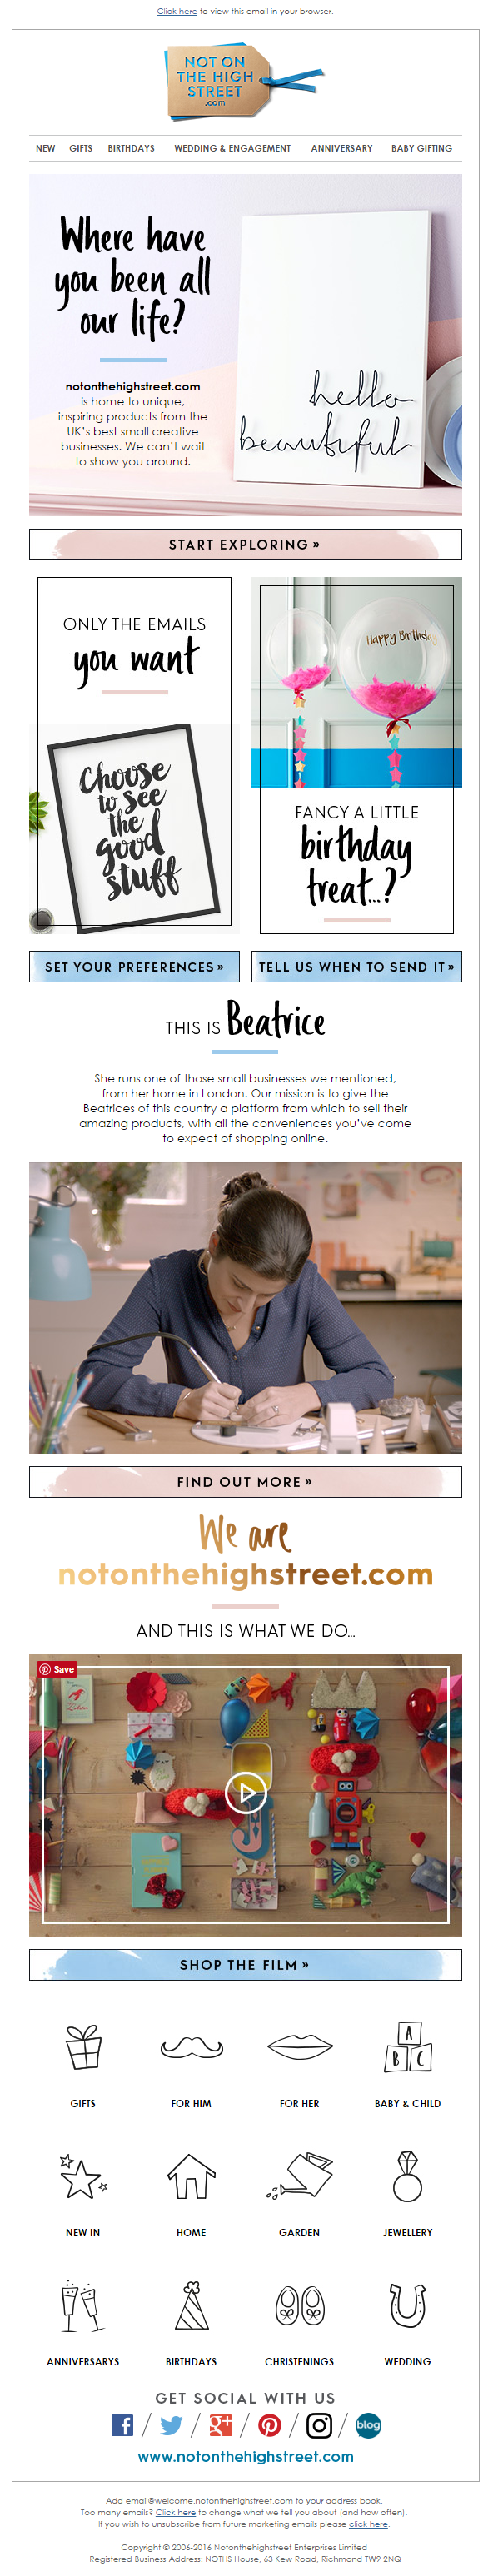 Welcome Email from NotOnTheHighstreet.com #EmailMarketing #Email ...